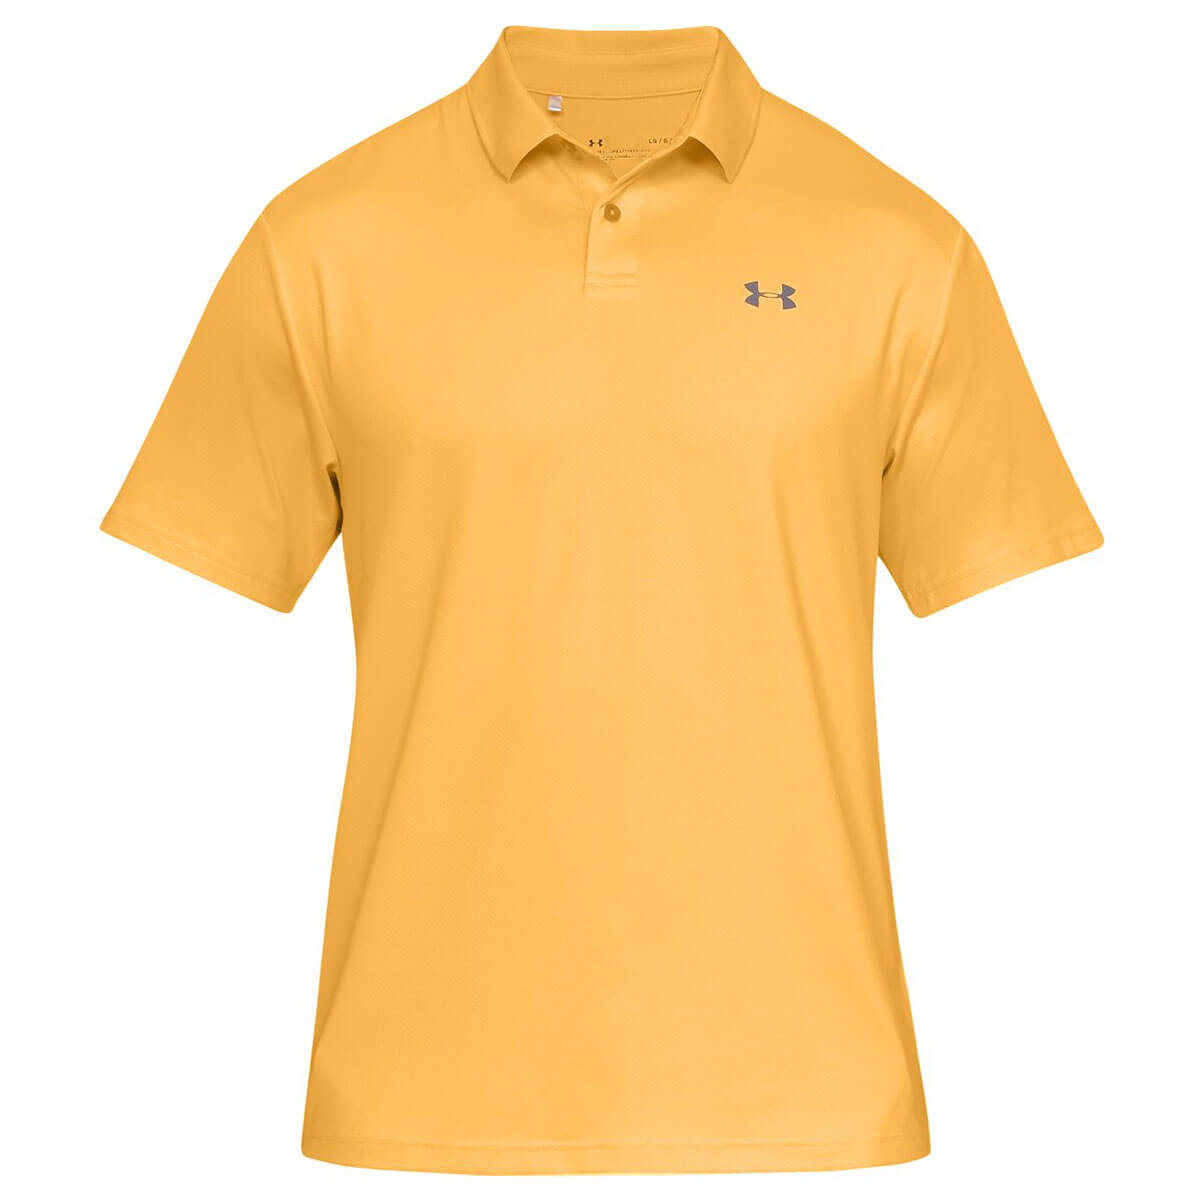 Under-Armour-Mens-2019-Performance-2-0-Stretch-Durable-Smooth-Golf-Polo-Shirt thumbnail 28